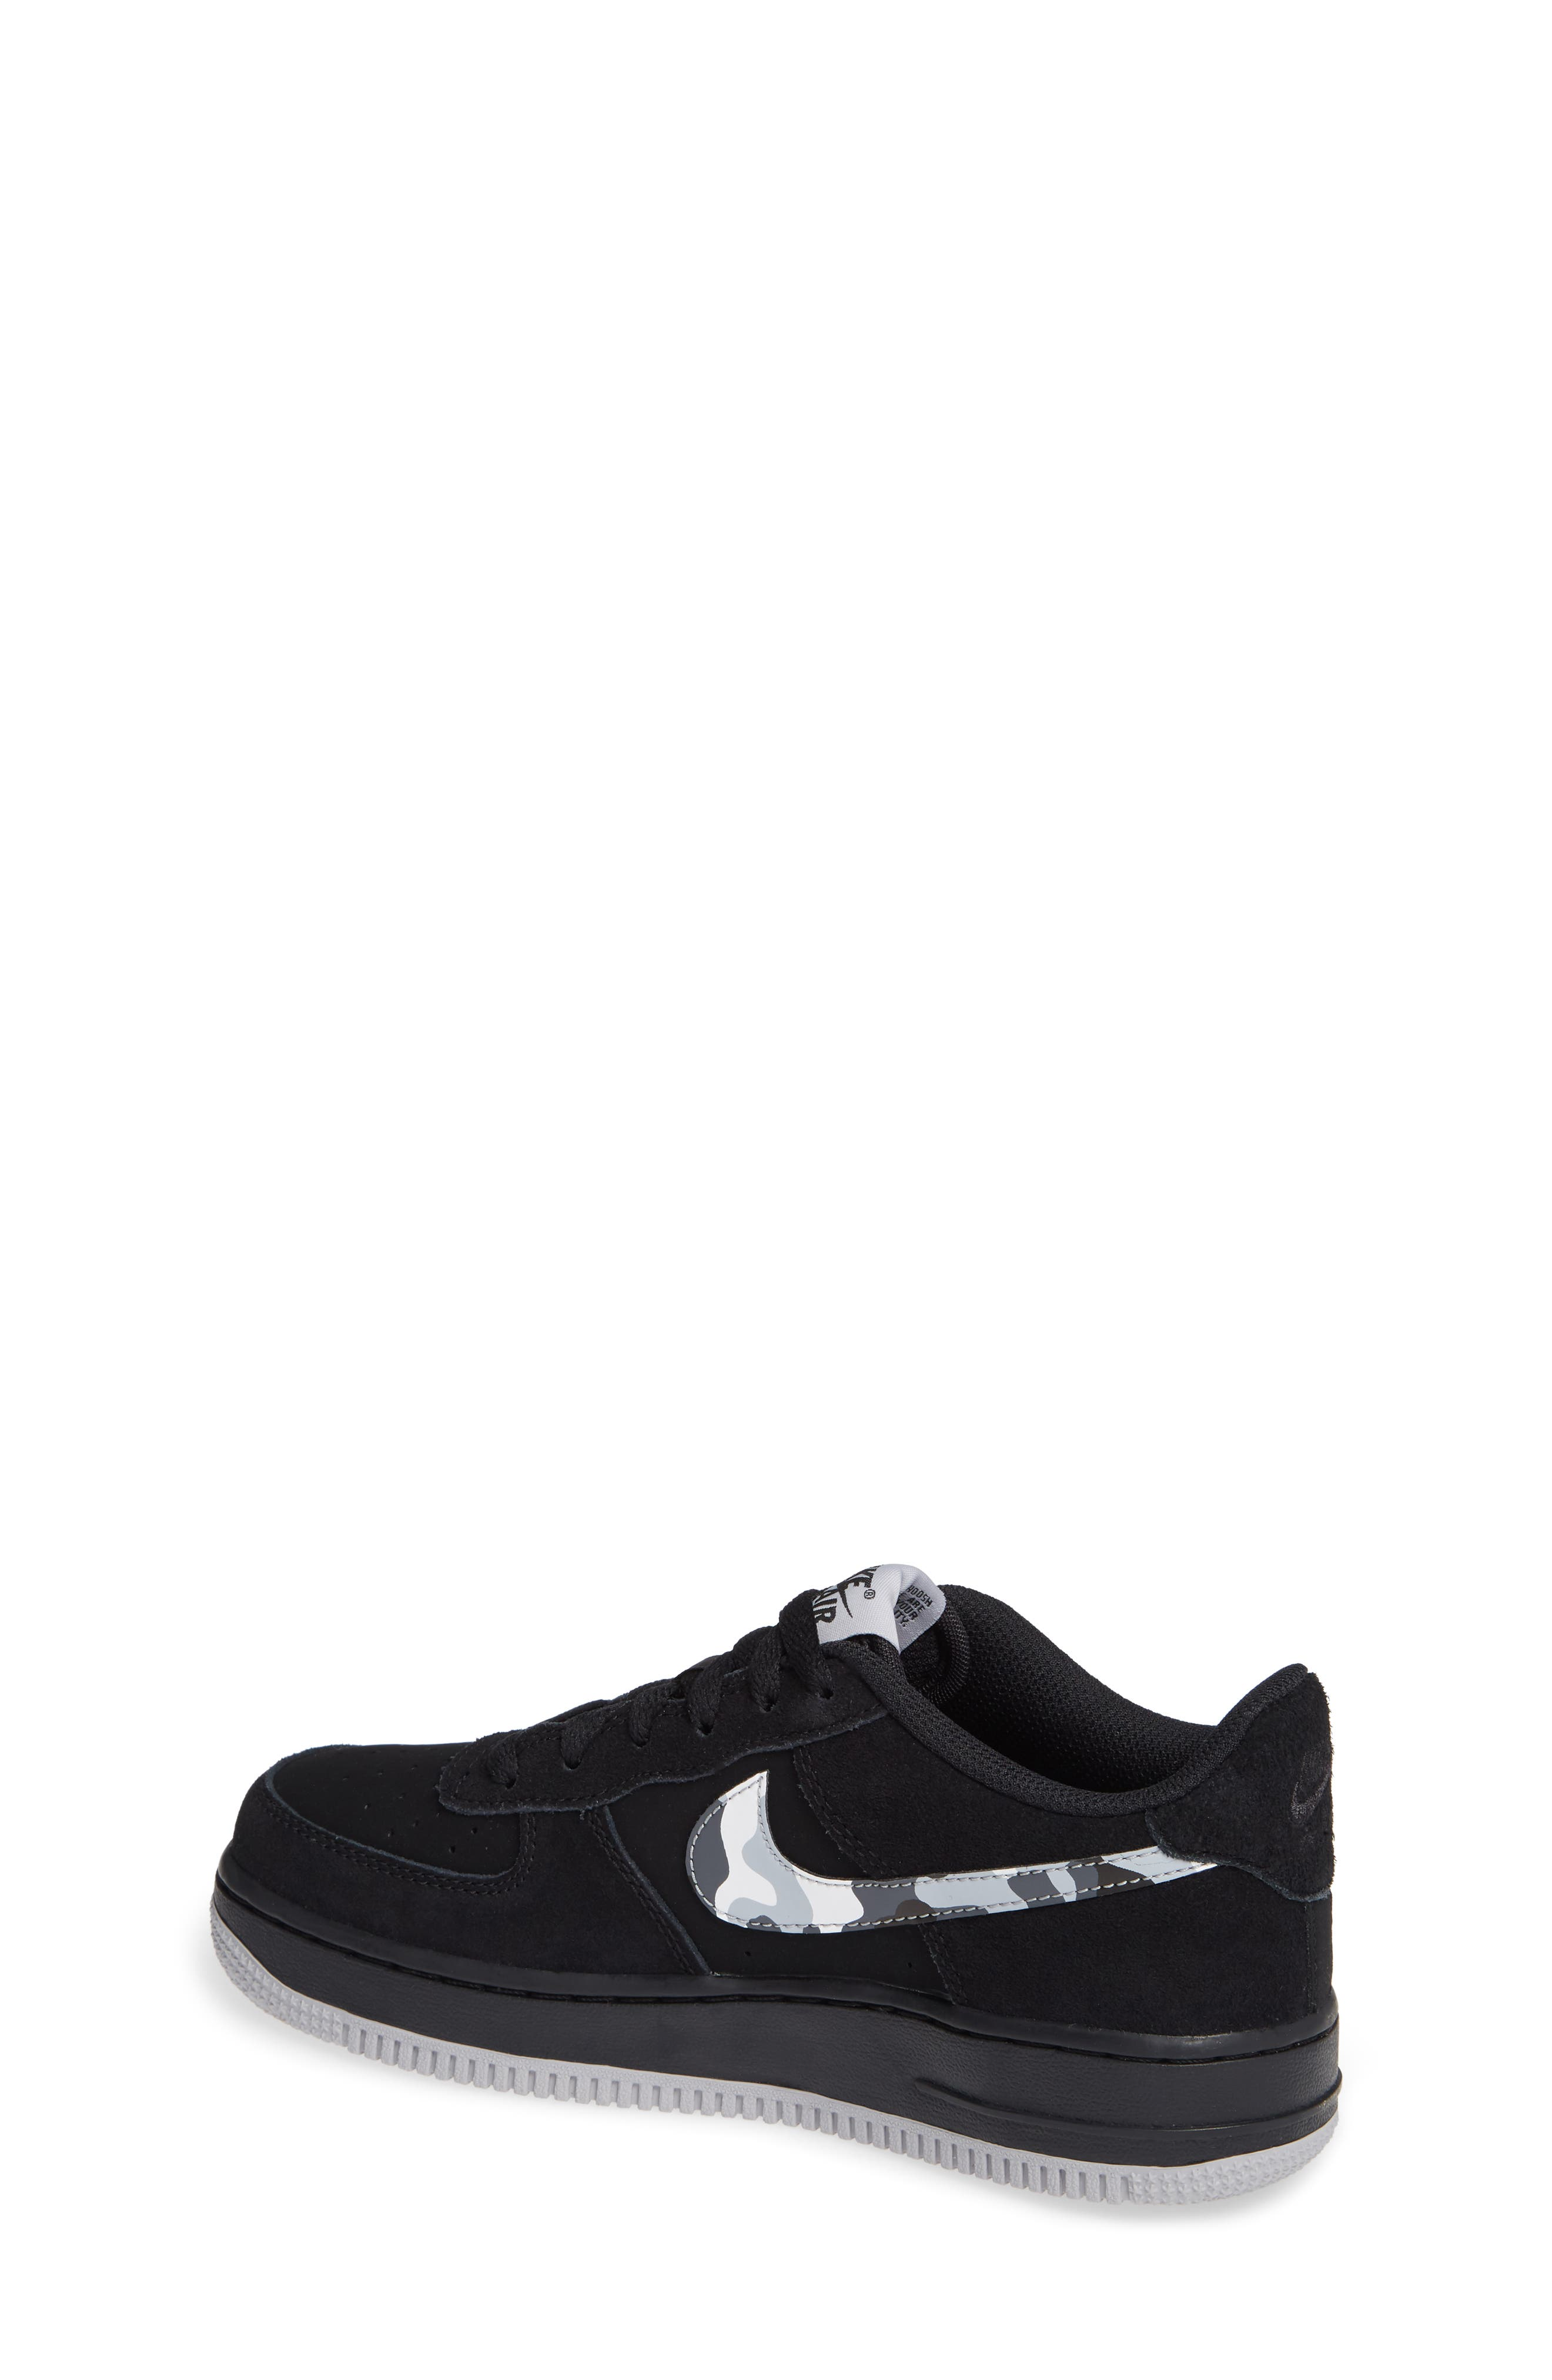 Air Force 1 Sneaker,                             Alternate thumbnail 2, color,                             BLACK/ GREY/ WHITE